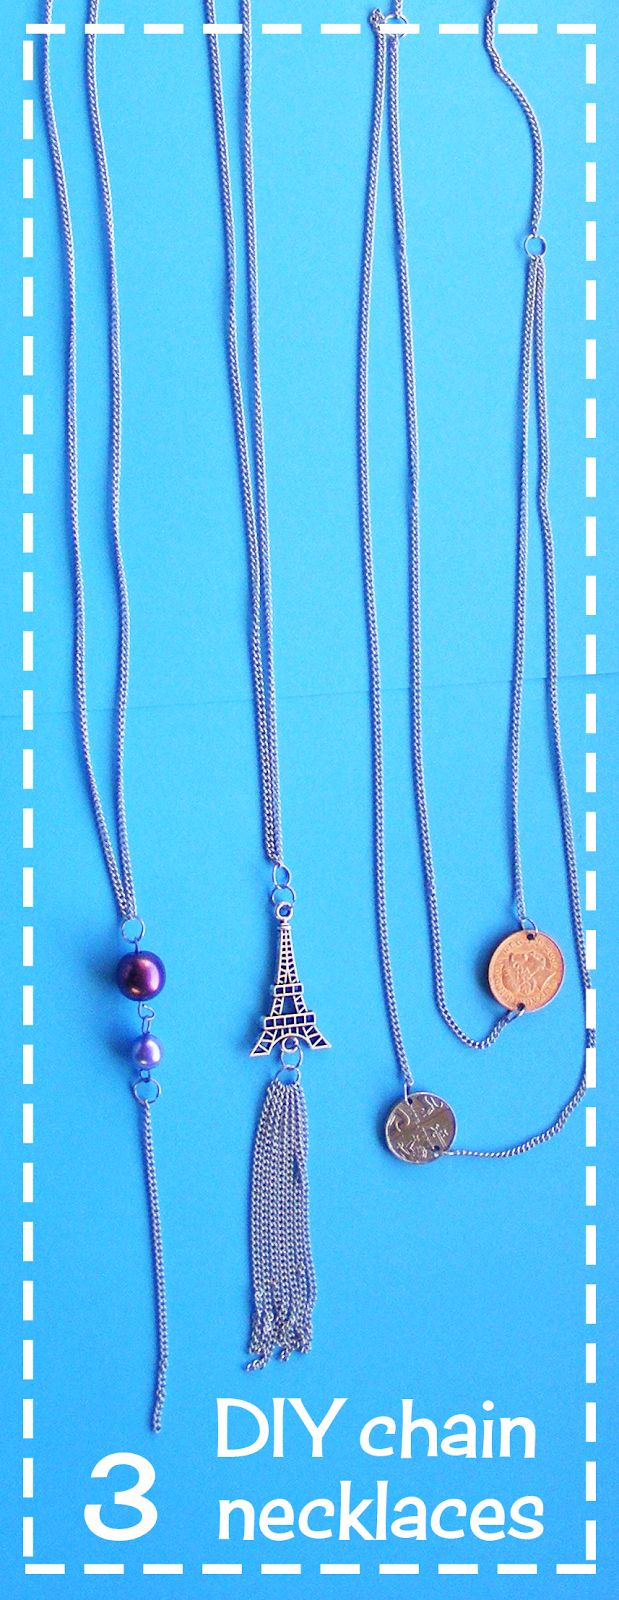 3 simple and cute DIY chain necklaces